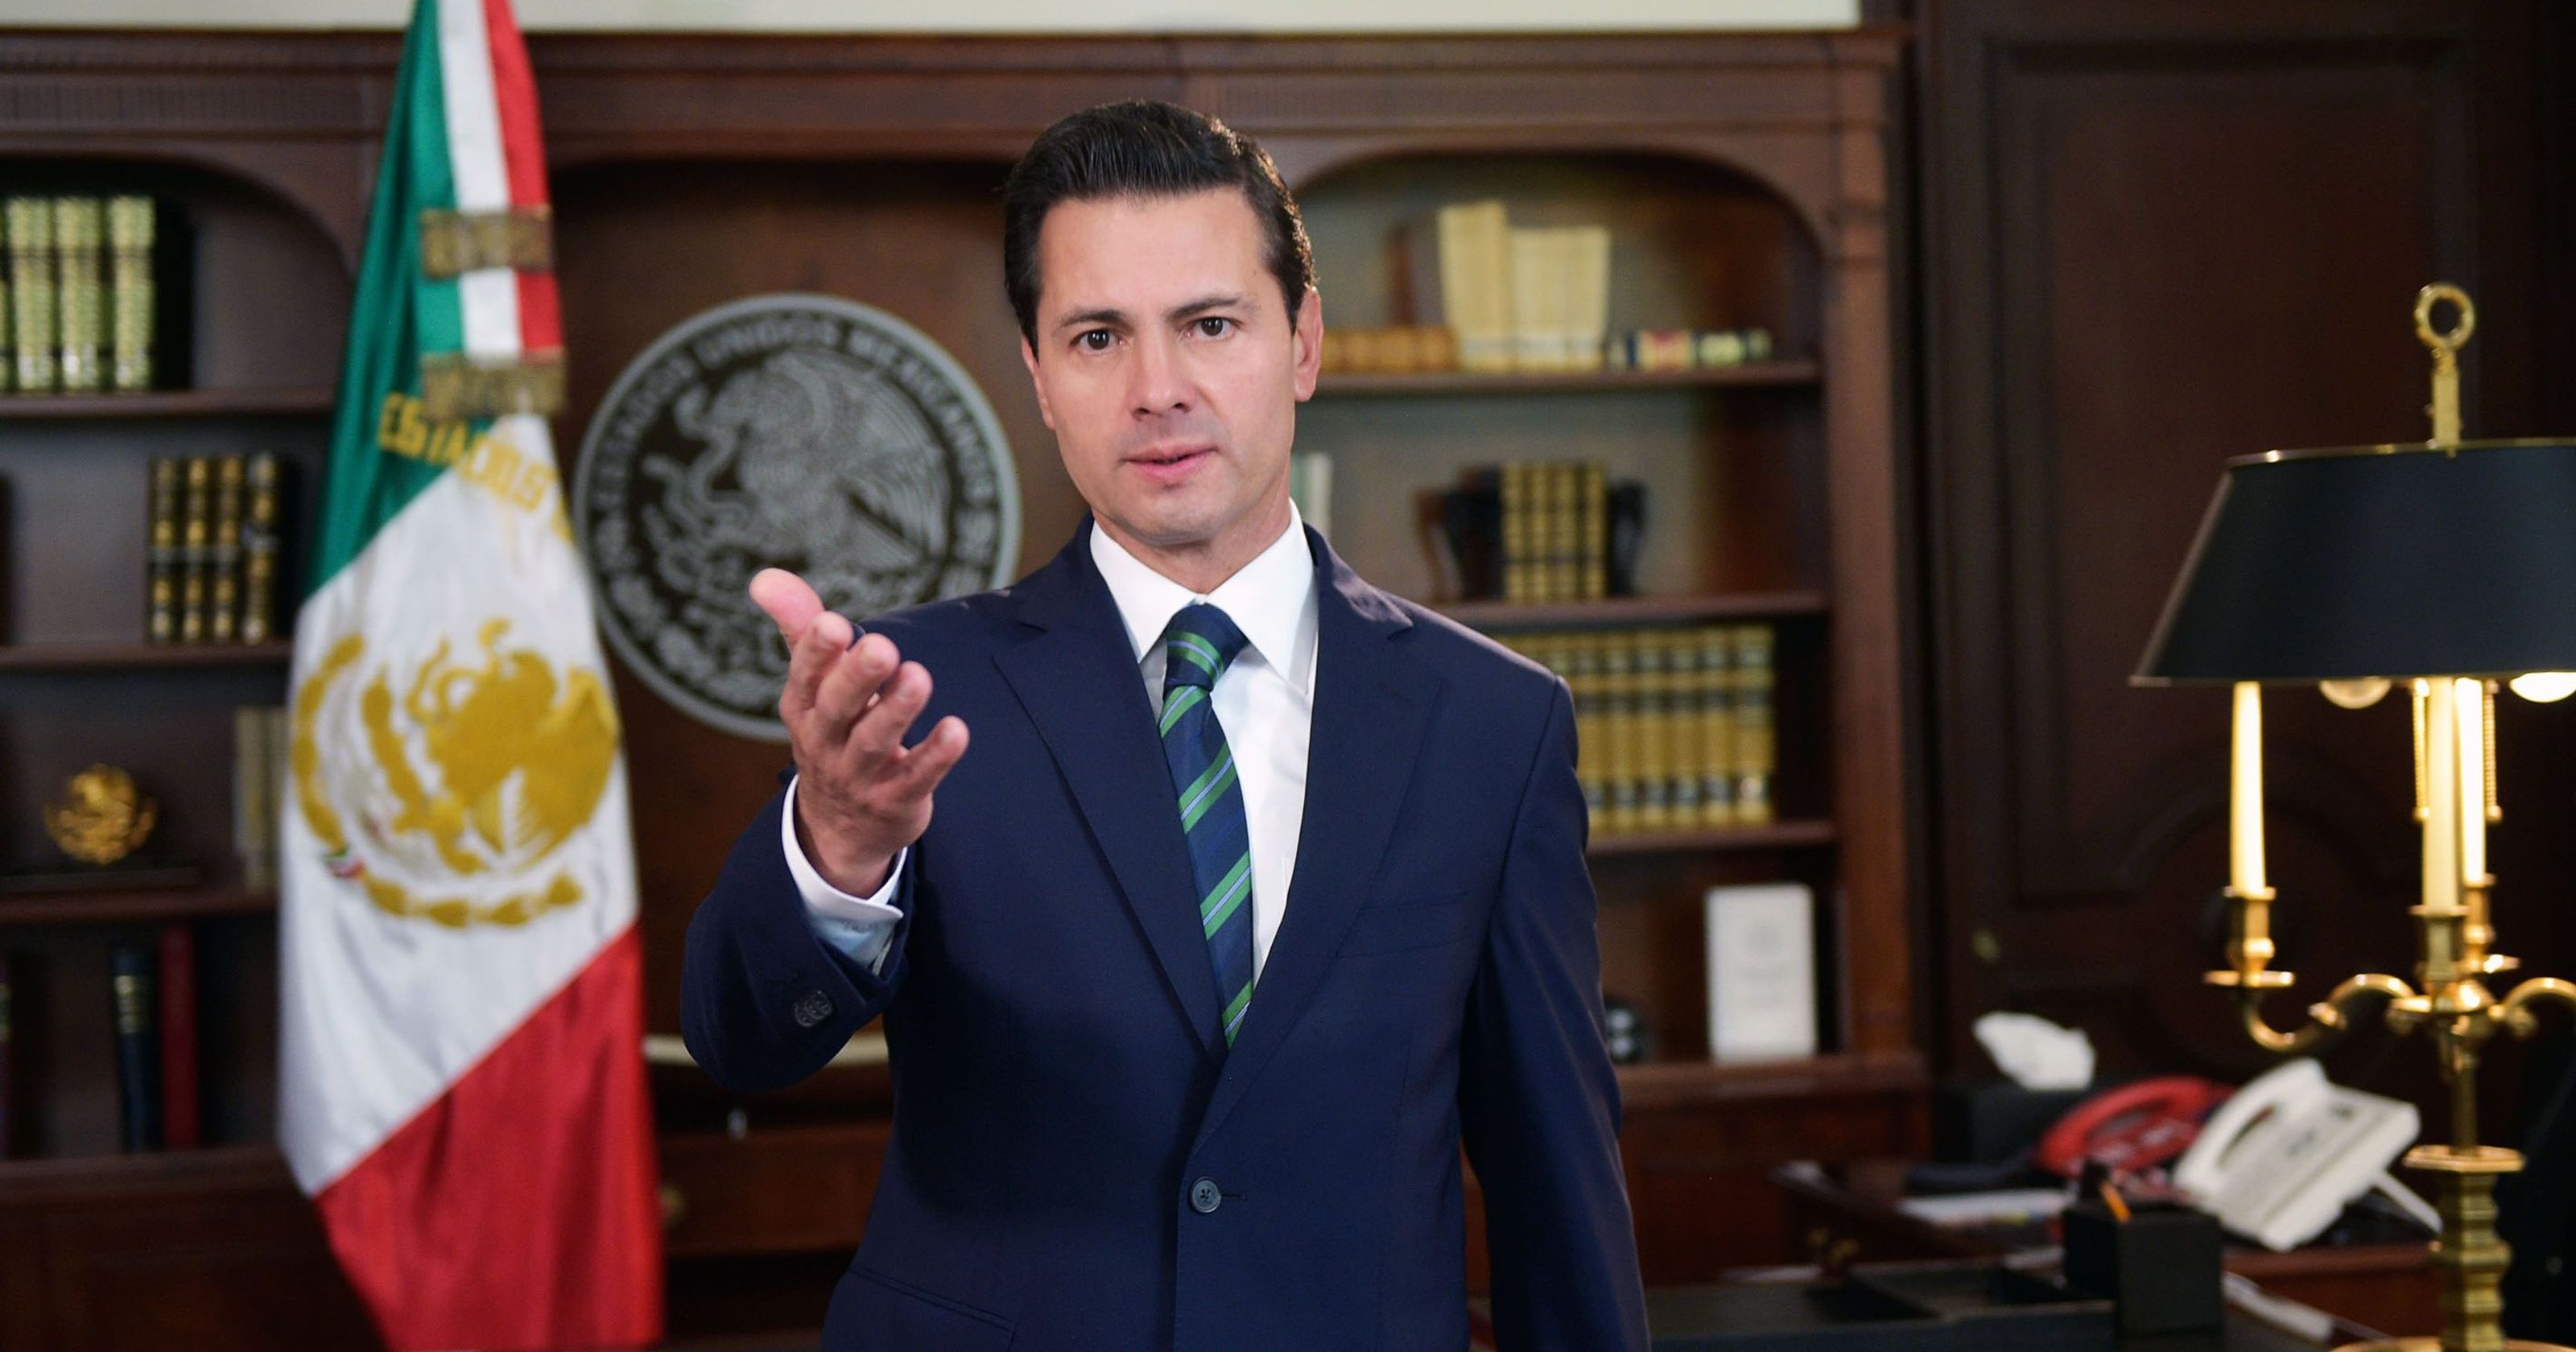 Mexico's unpopular president to leave behind troubled administration mired in scandal, controversy